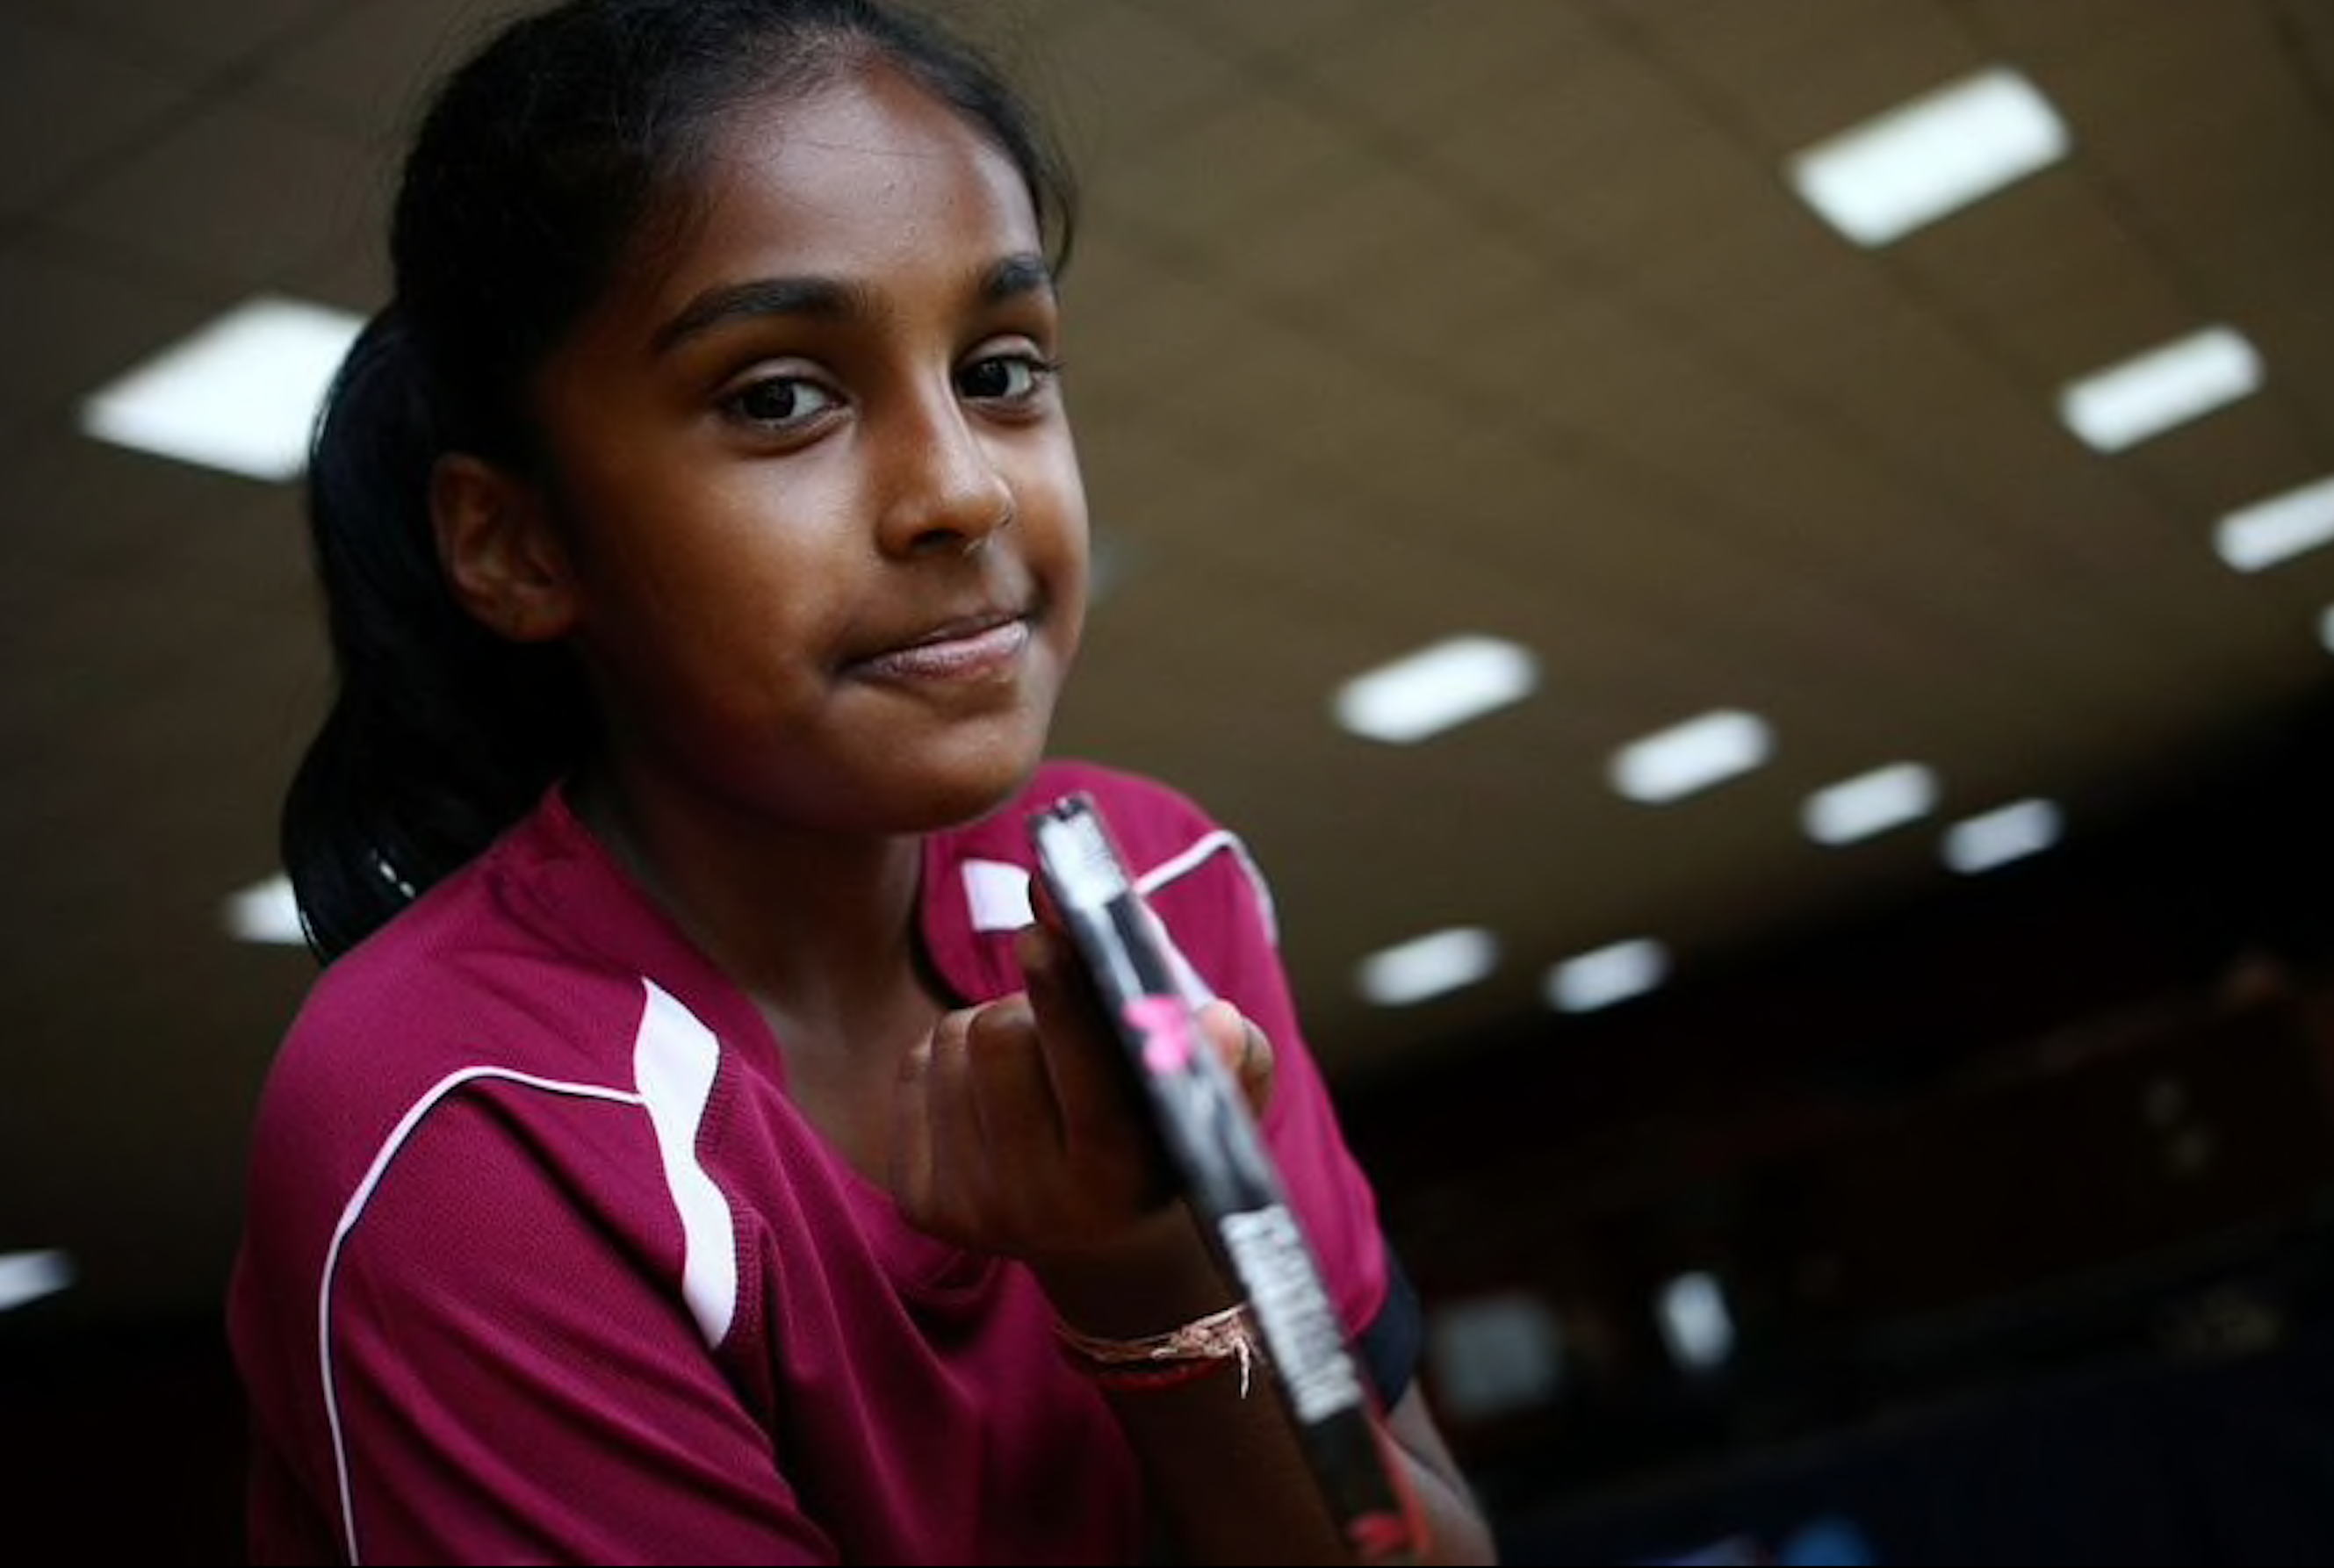 Prithika Pavade- An Indian origin girl qualifies for her first Olympic Games representing France.